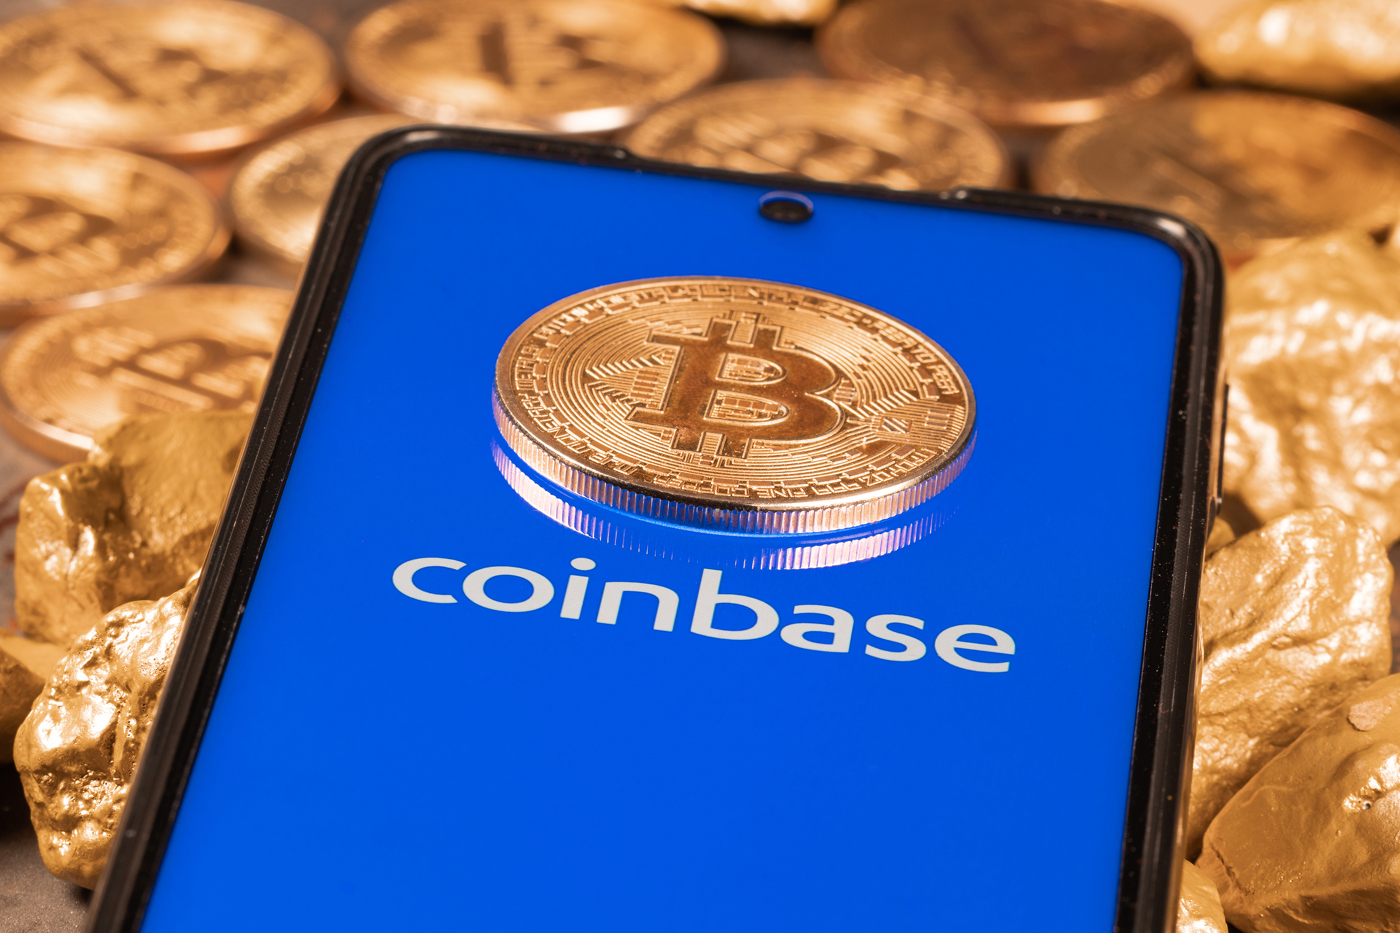 Coinbase, Cryptocurrency, Digital Currency, Bitcoin, Ethereum, Dogecoin